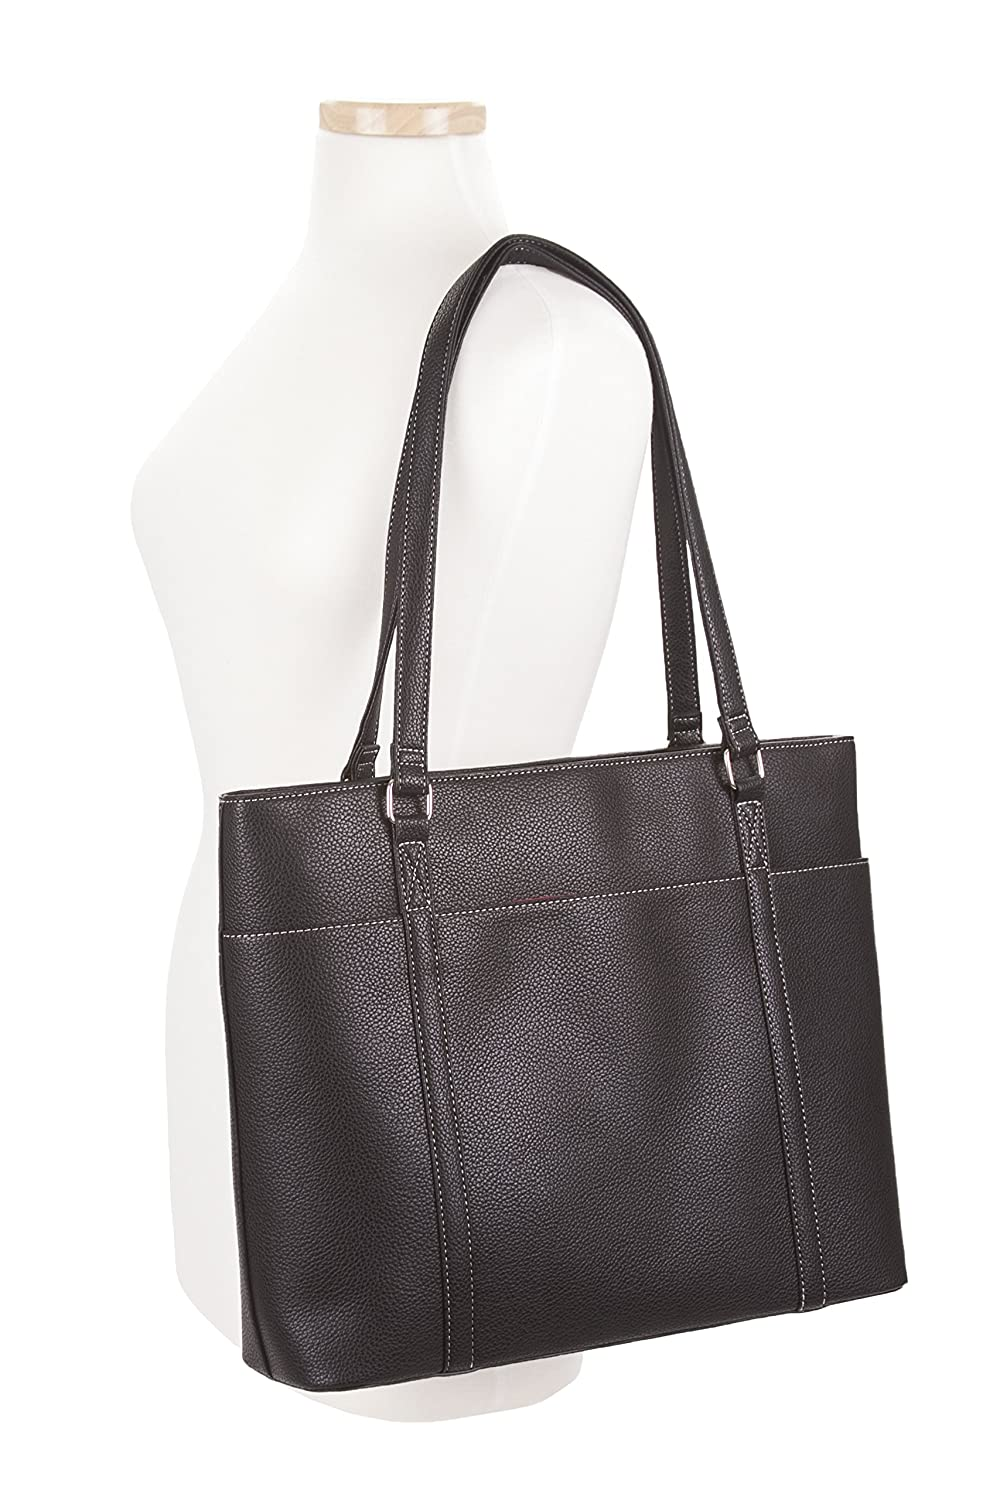 9705e658d Amazon.com: Overbrooke Classic Laptop Tote Bag - X-Large Premium Vegan  Leather Womens Shoulder Bag for Laptops up to 15.6 Inches: Computers &  Accessories